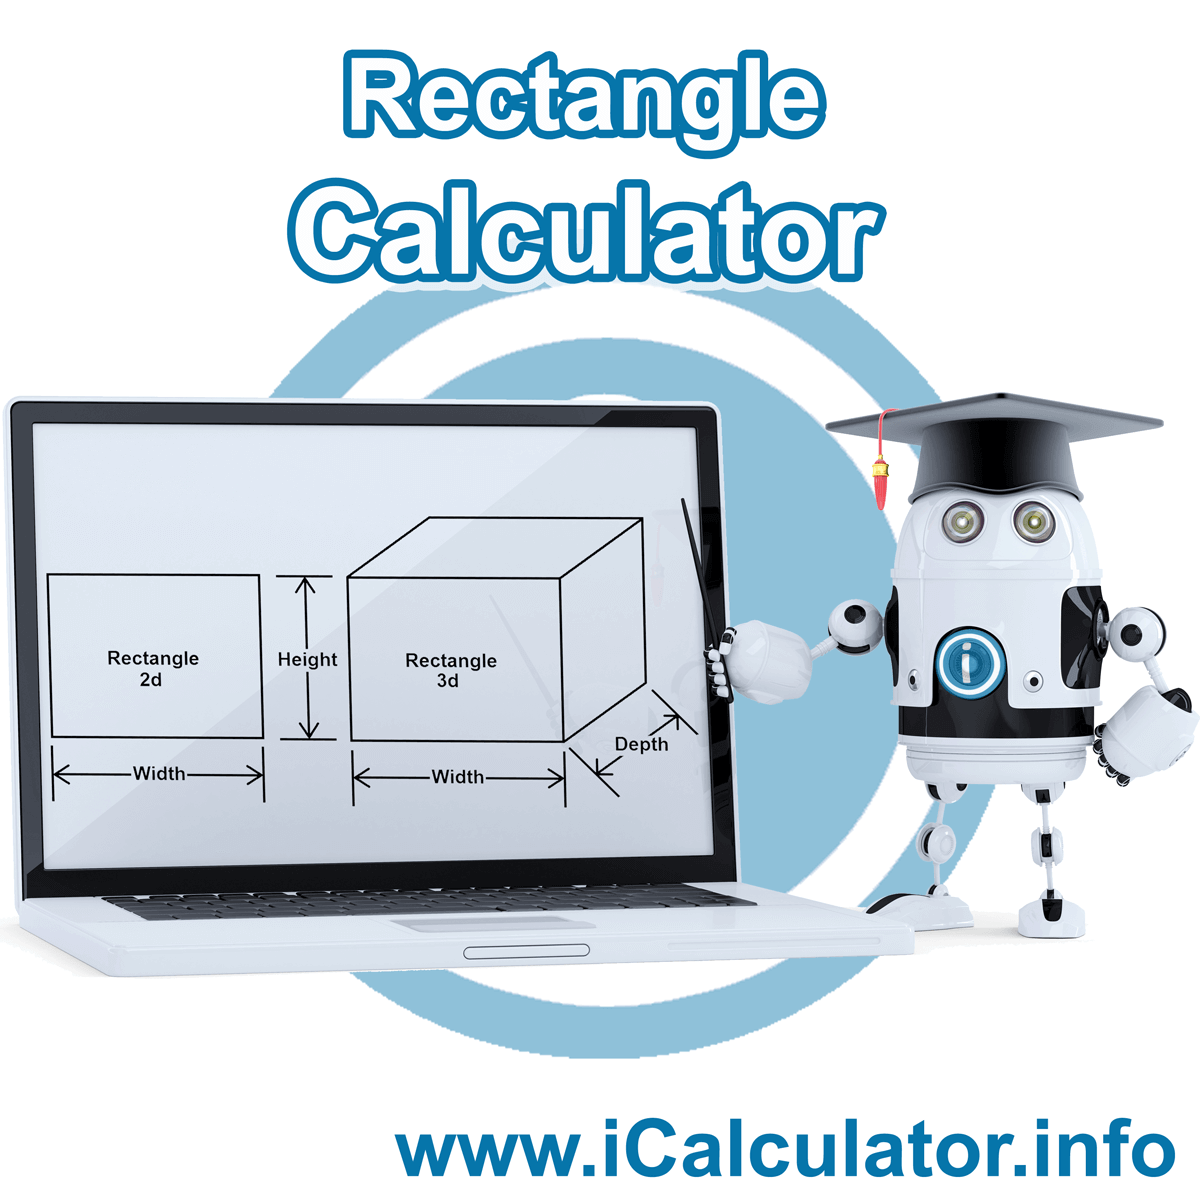 Rectangle Calculator. This image shows a 2D rectangle and a 3D rectangle with associated calculations used by the Rectangle Calculator